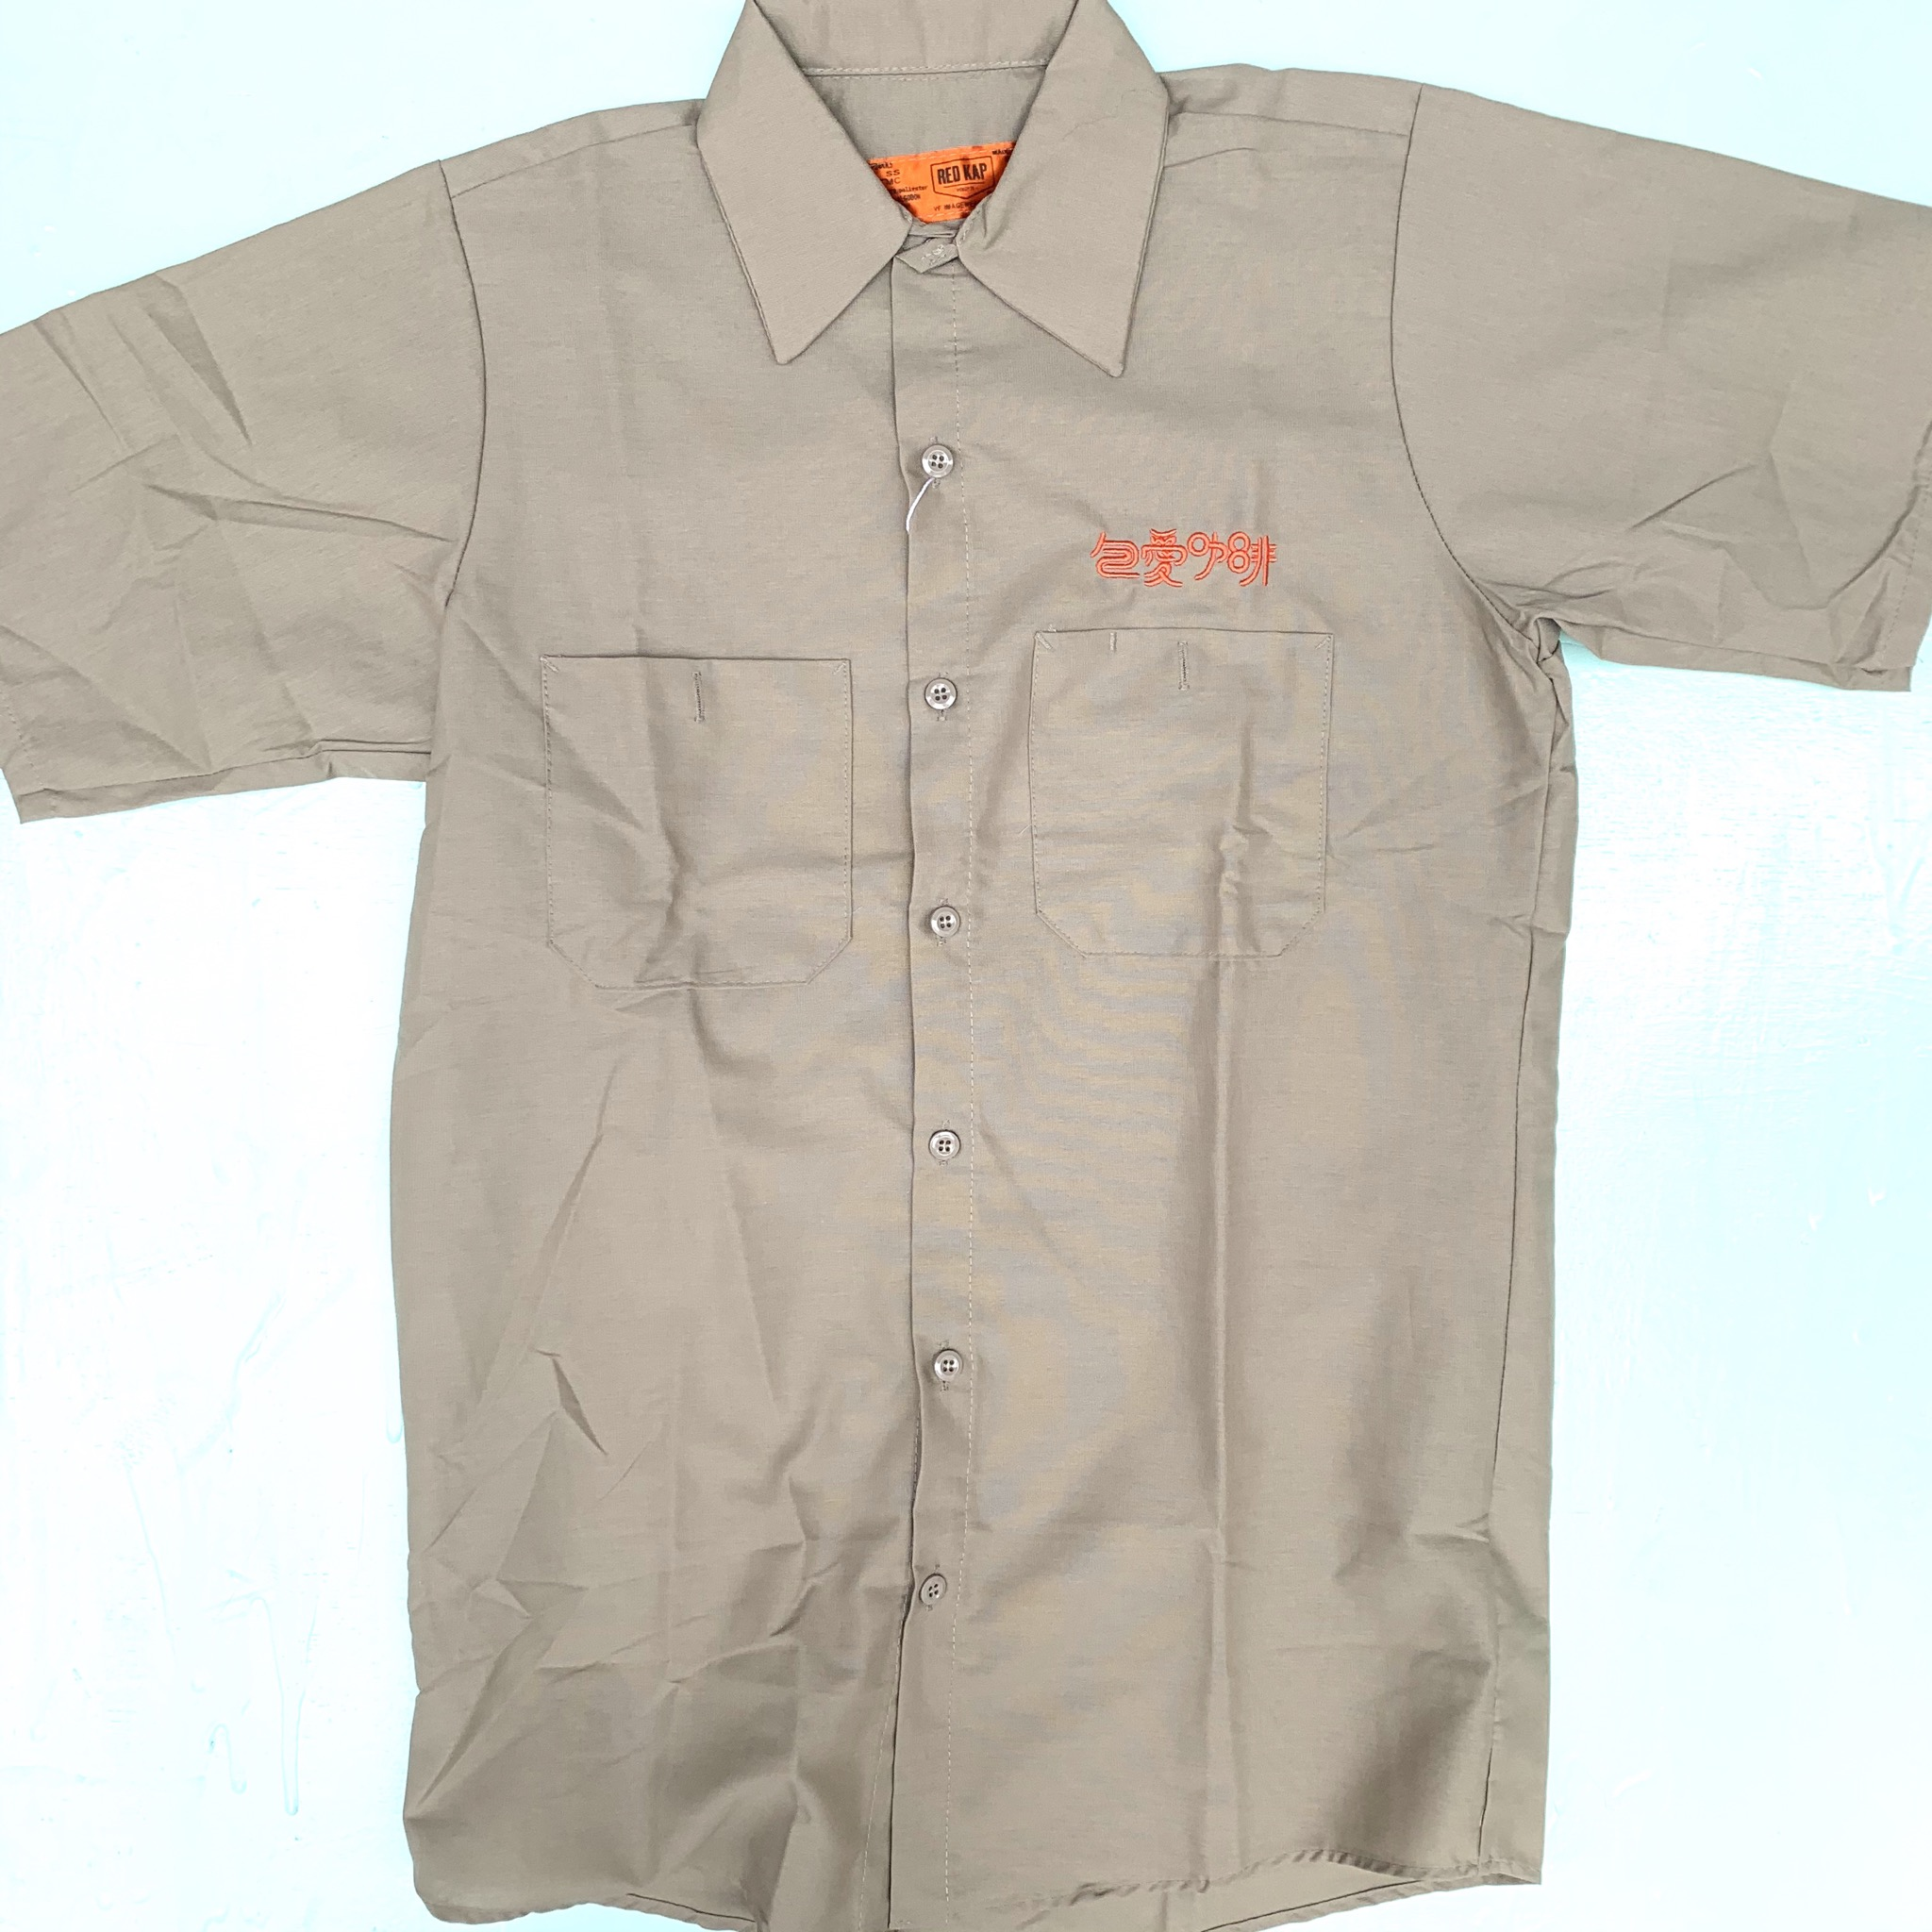 包愛咖啡 S/S WORK SHIRT 4COLORS HC-02